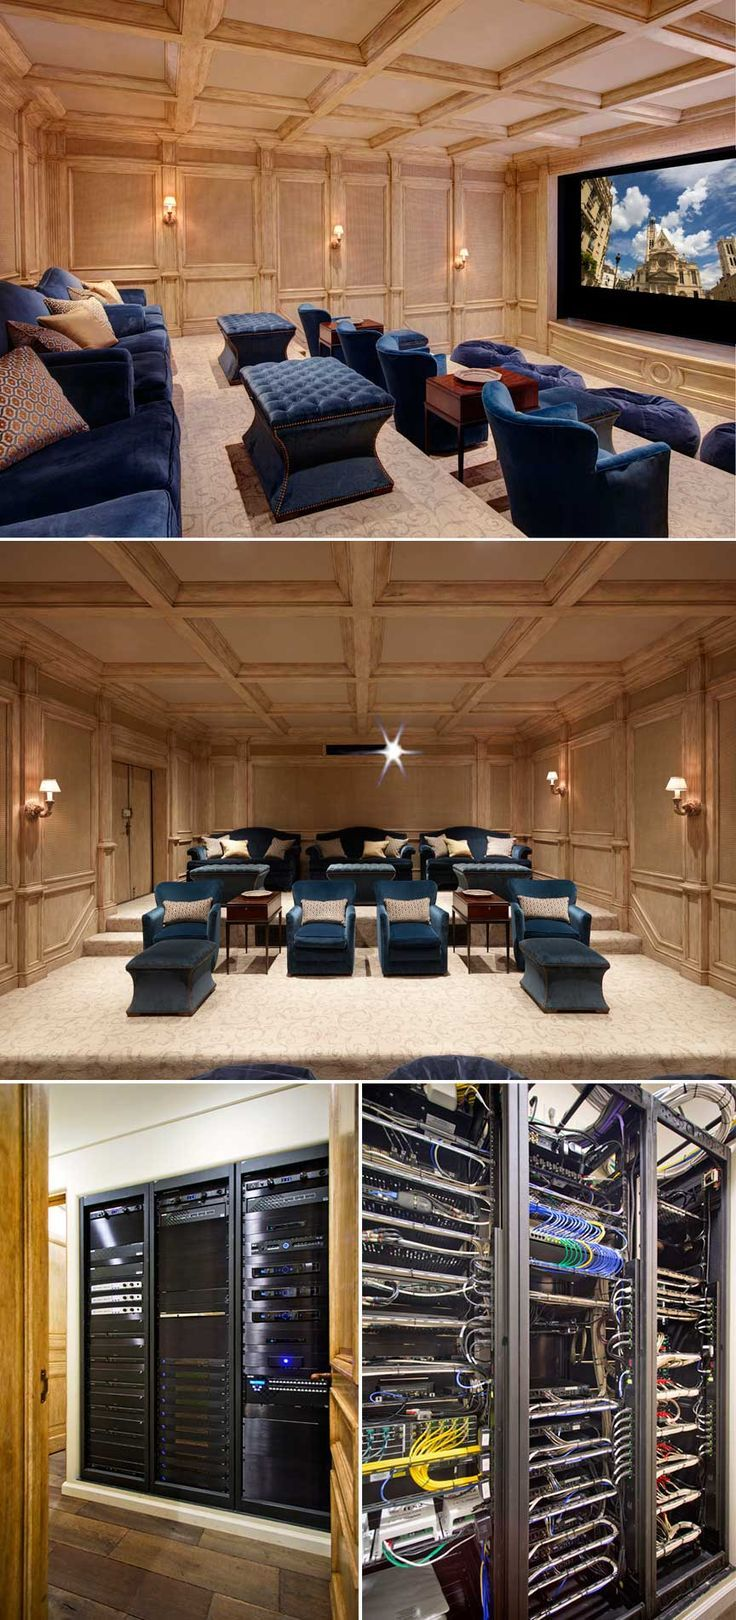 39 best Home Theaters images on Pinterest | Home movie theaters ...